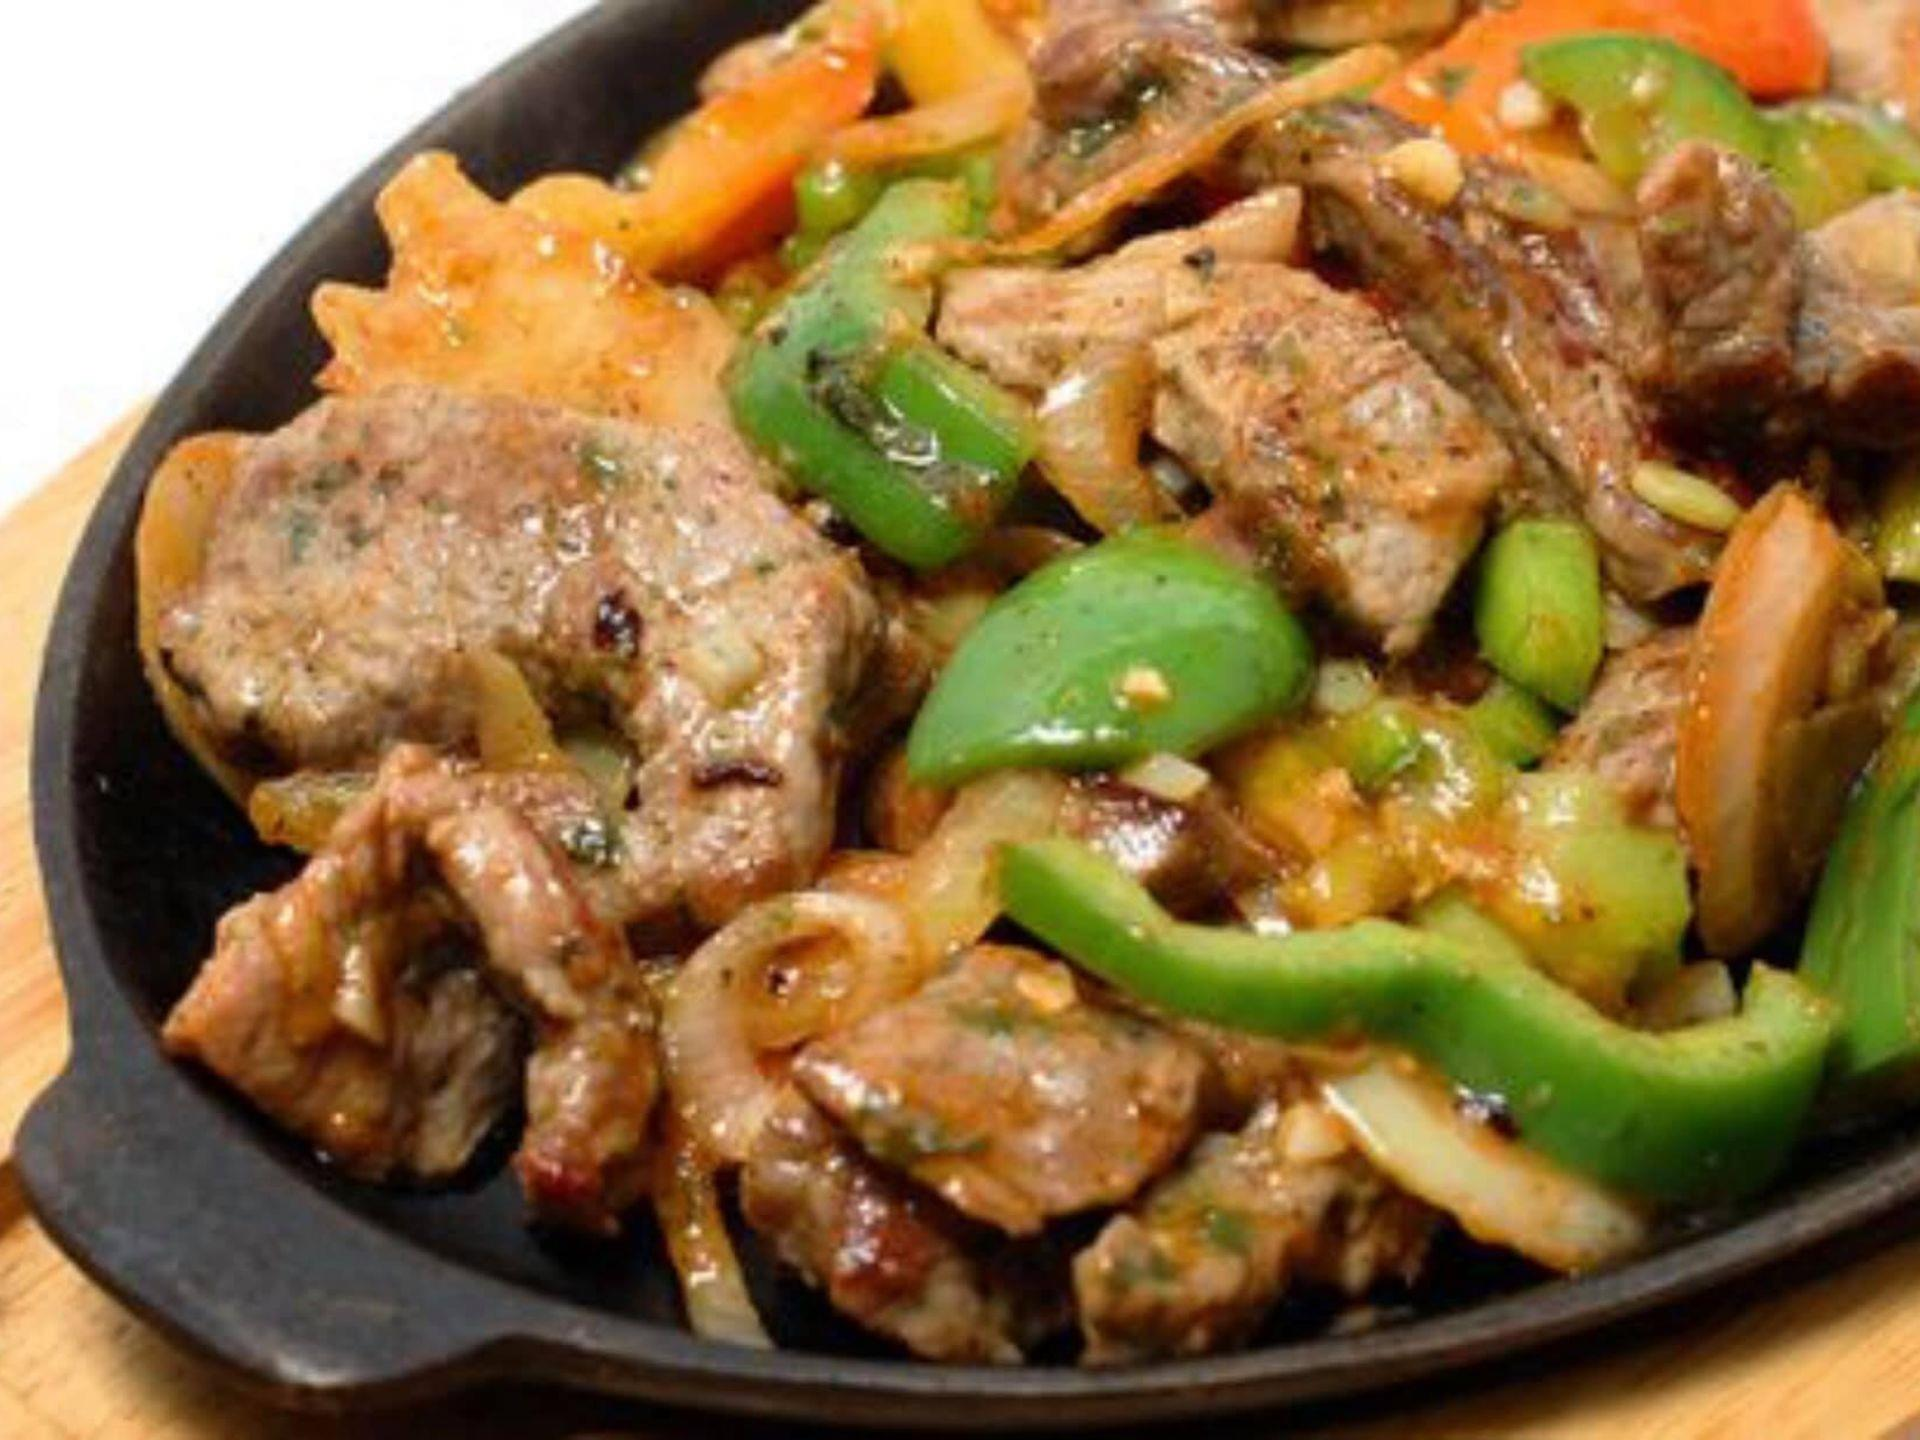 Steak fajitas in a skillet with onions and peppers